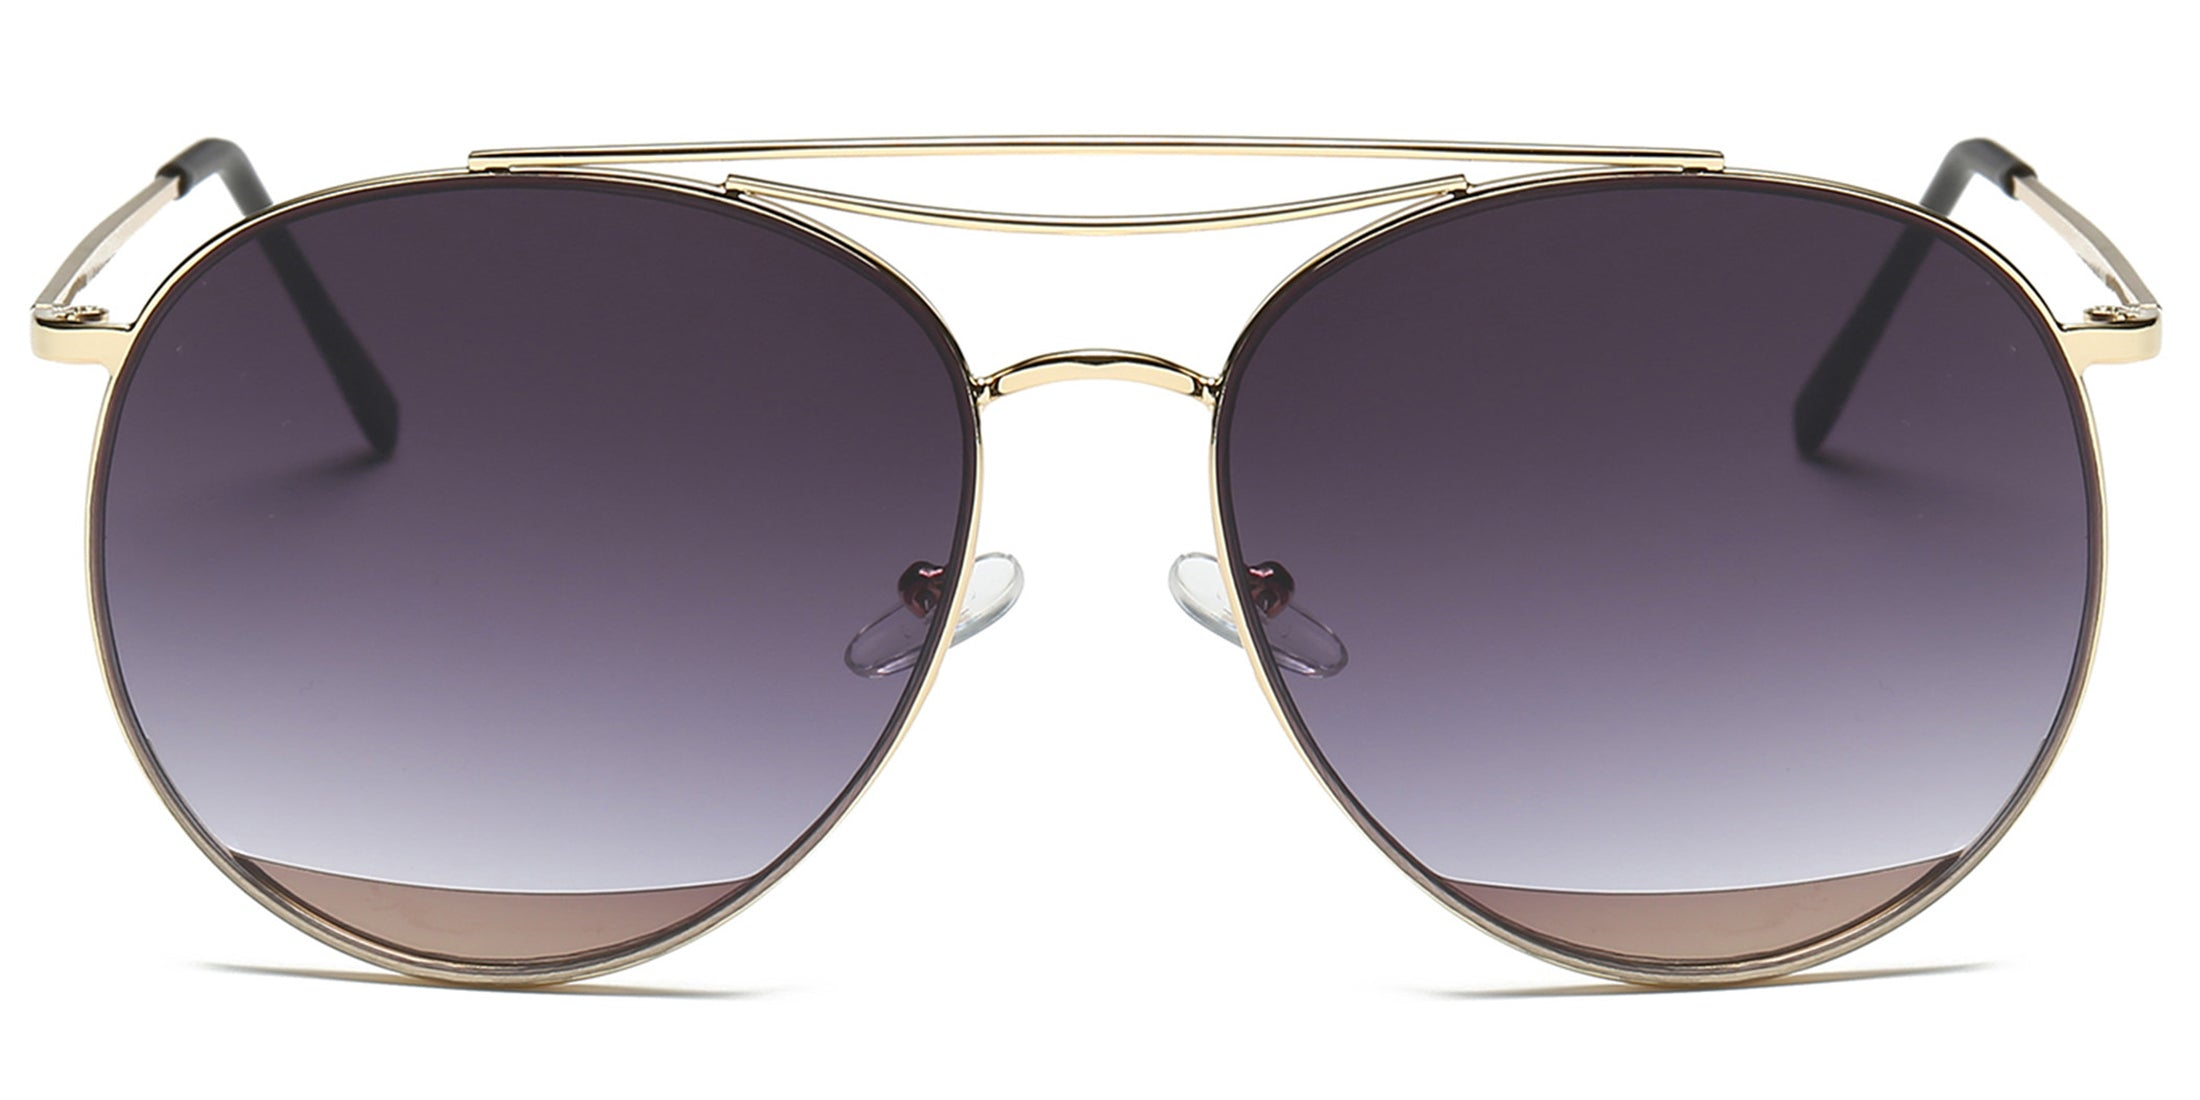 Akcessoryz-Women round purple lens with gold frame sunglasses